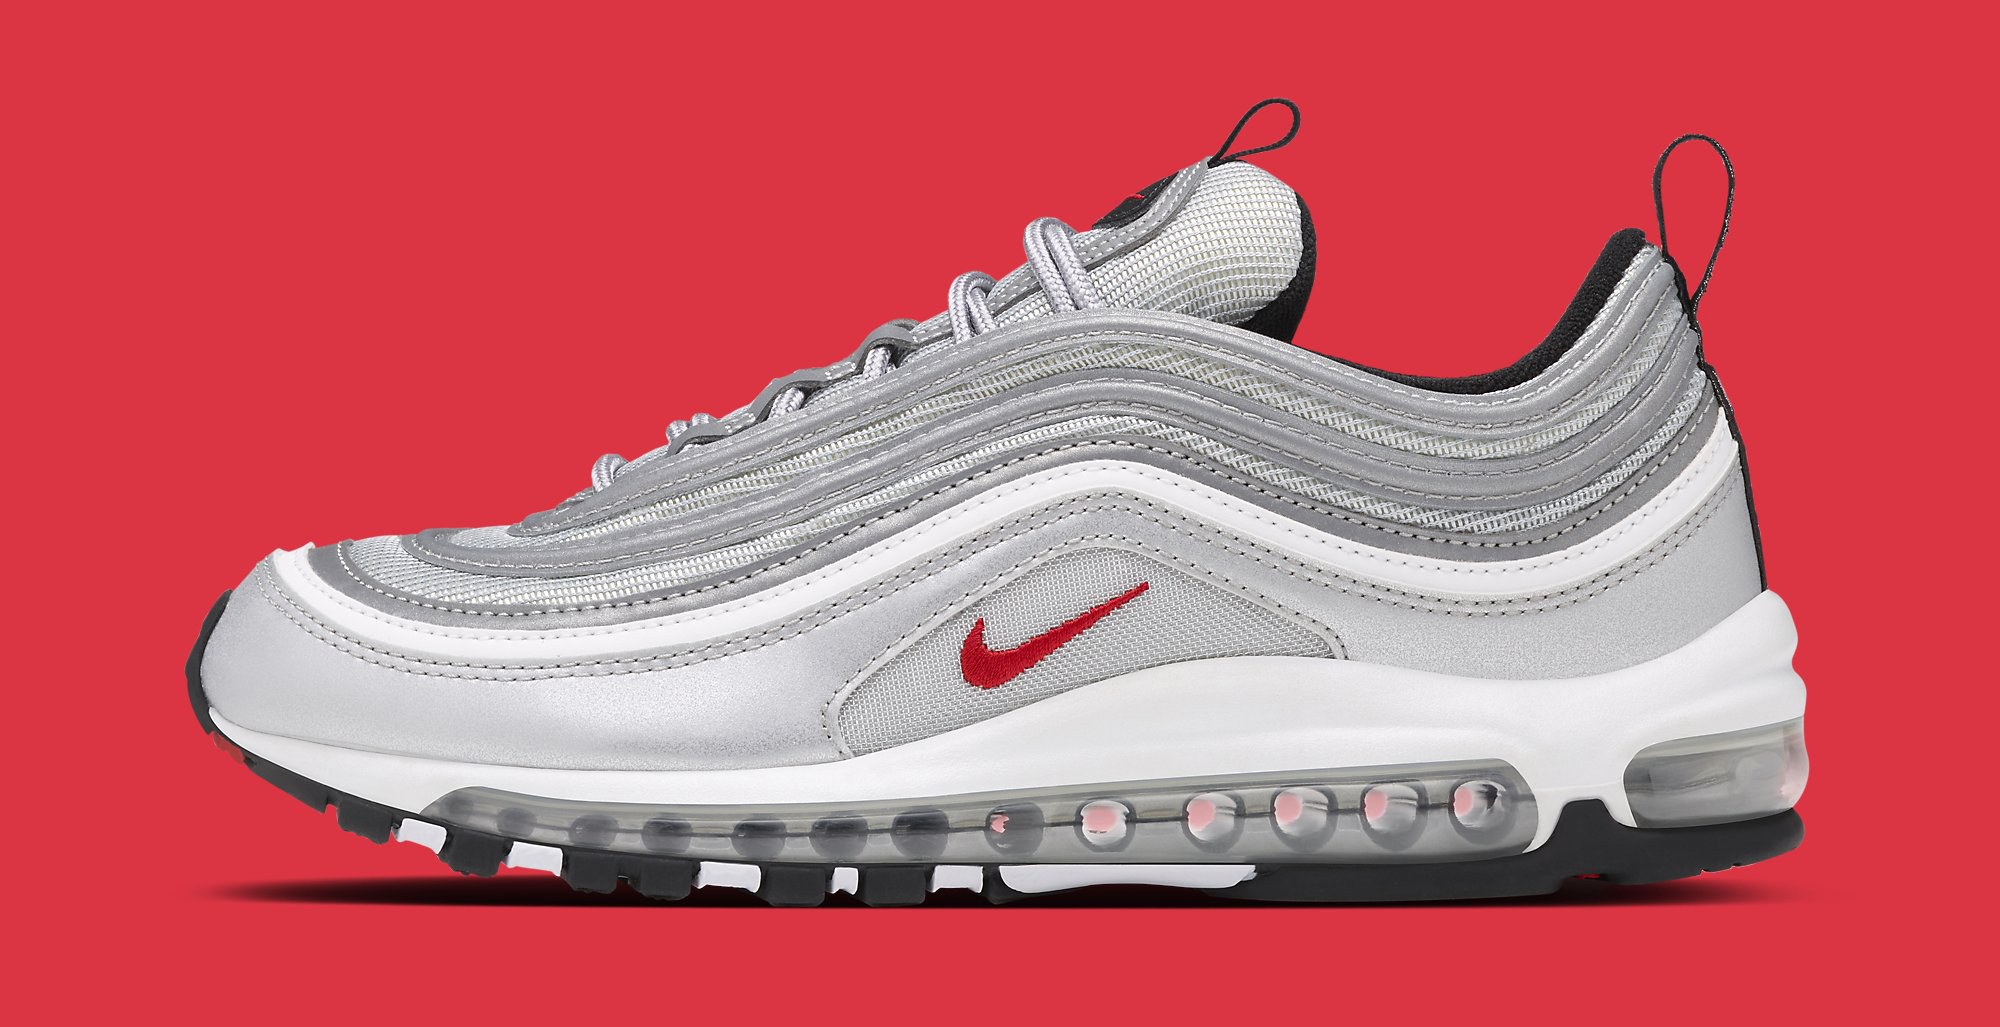 44e03a8e1b00 Cheap Nike Air Max 97 Shoes Sale